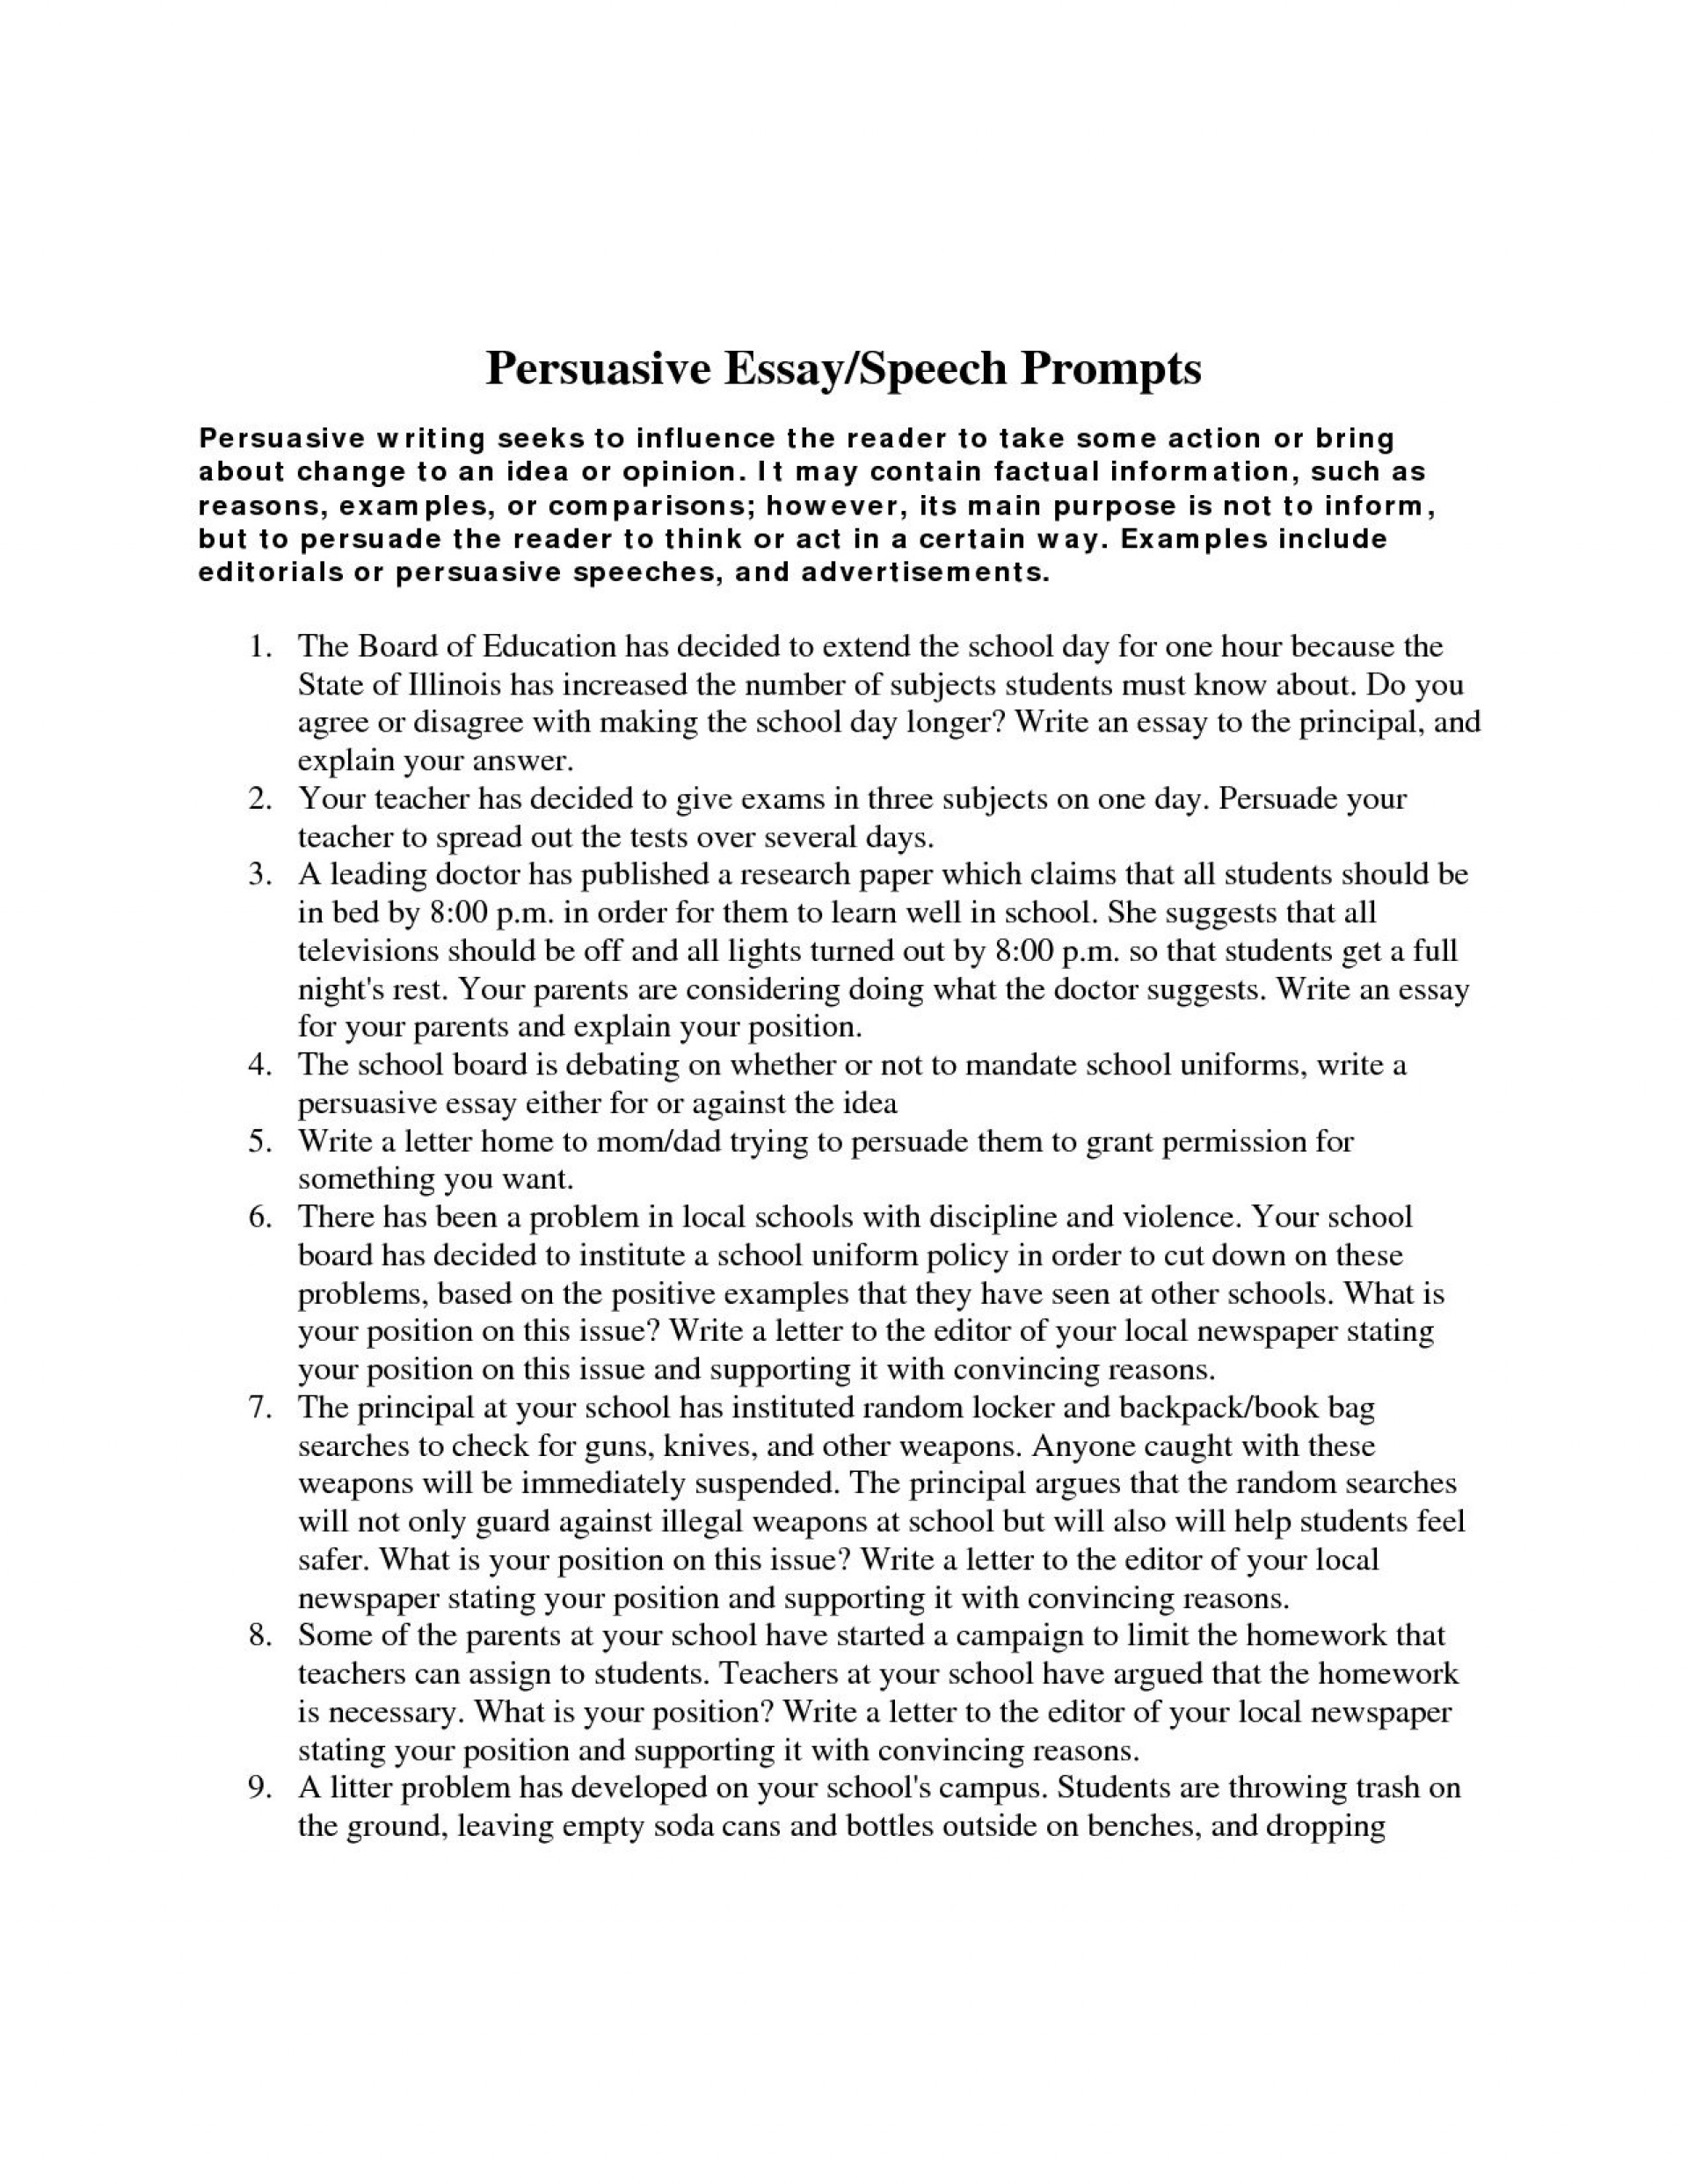 007 Persuasive Essay Example Writing Prompts High School Students Argumentative Speech Topics For Sample Good Dreaded Rubric Word Document Graphic Organizer 8th Grade Outline 1920